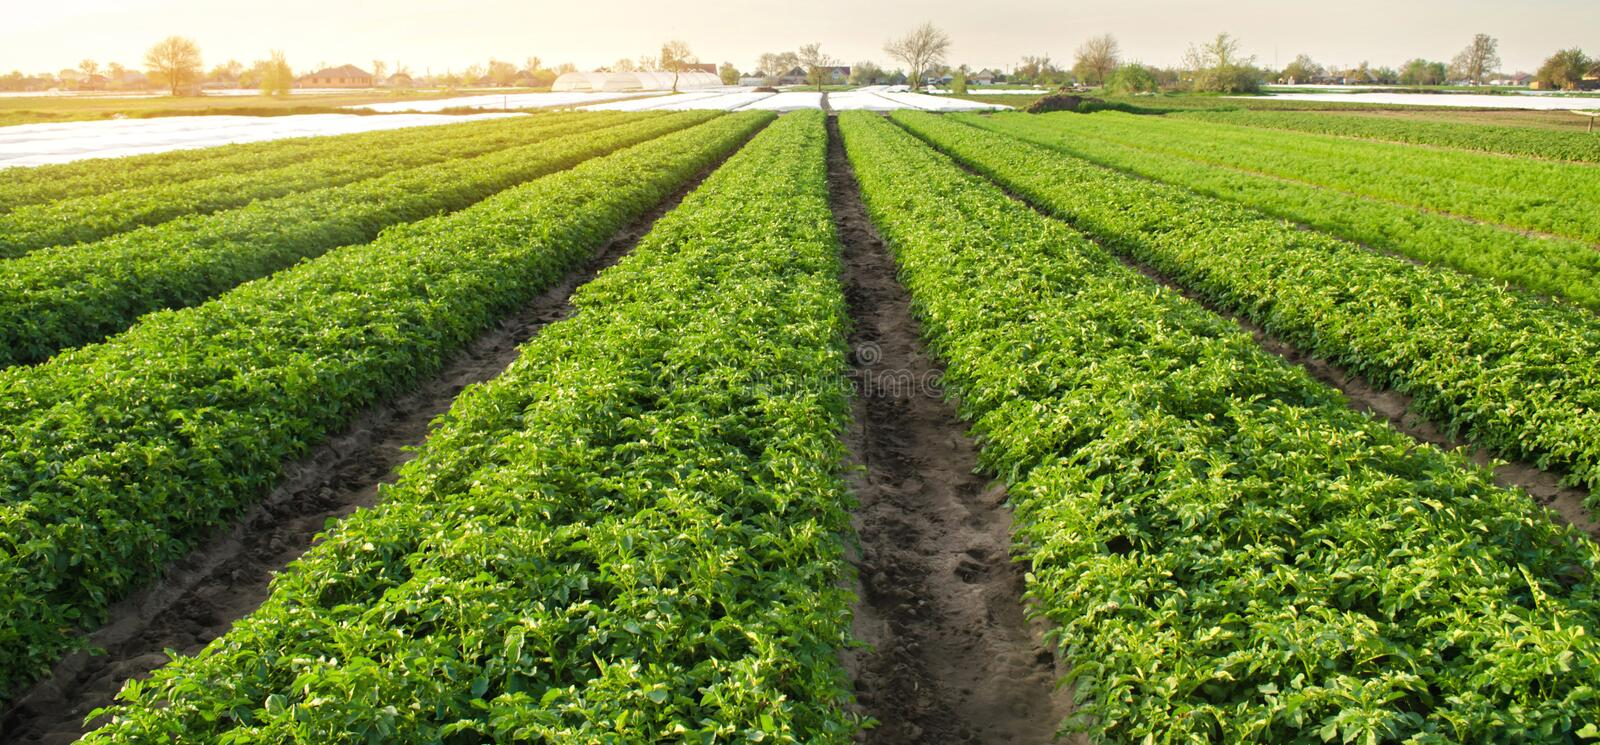 Potato plantations are grow on the field on a sunny day. Growing organic vegetables in the field. Vegetable rows. Agriculture. Farming. Selective focus royalty free stock image